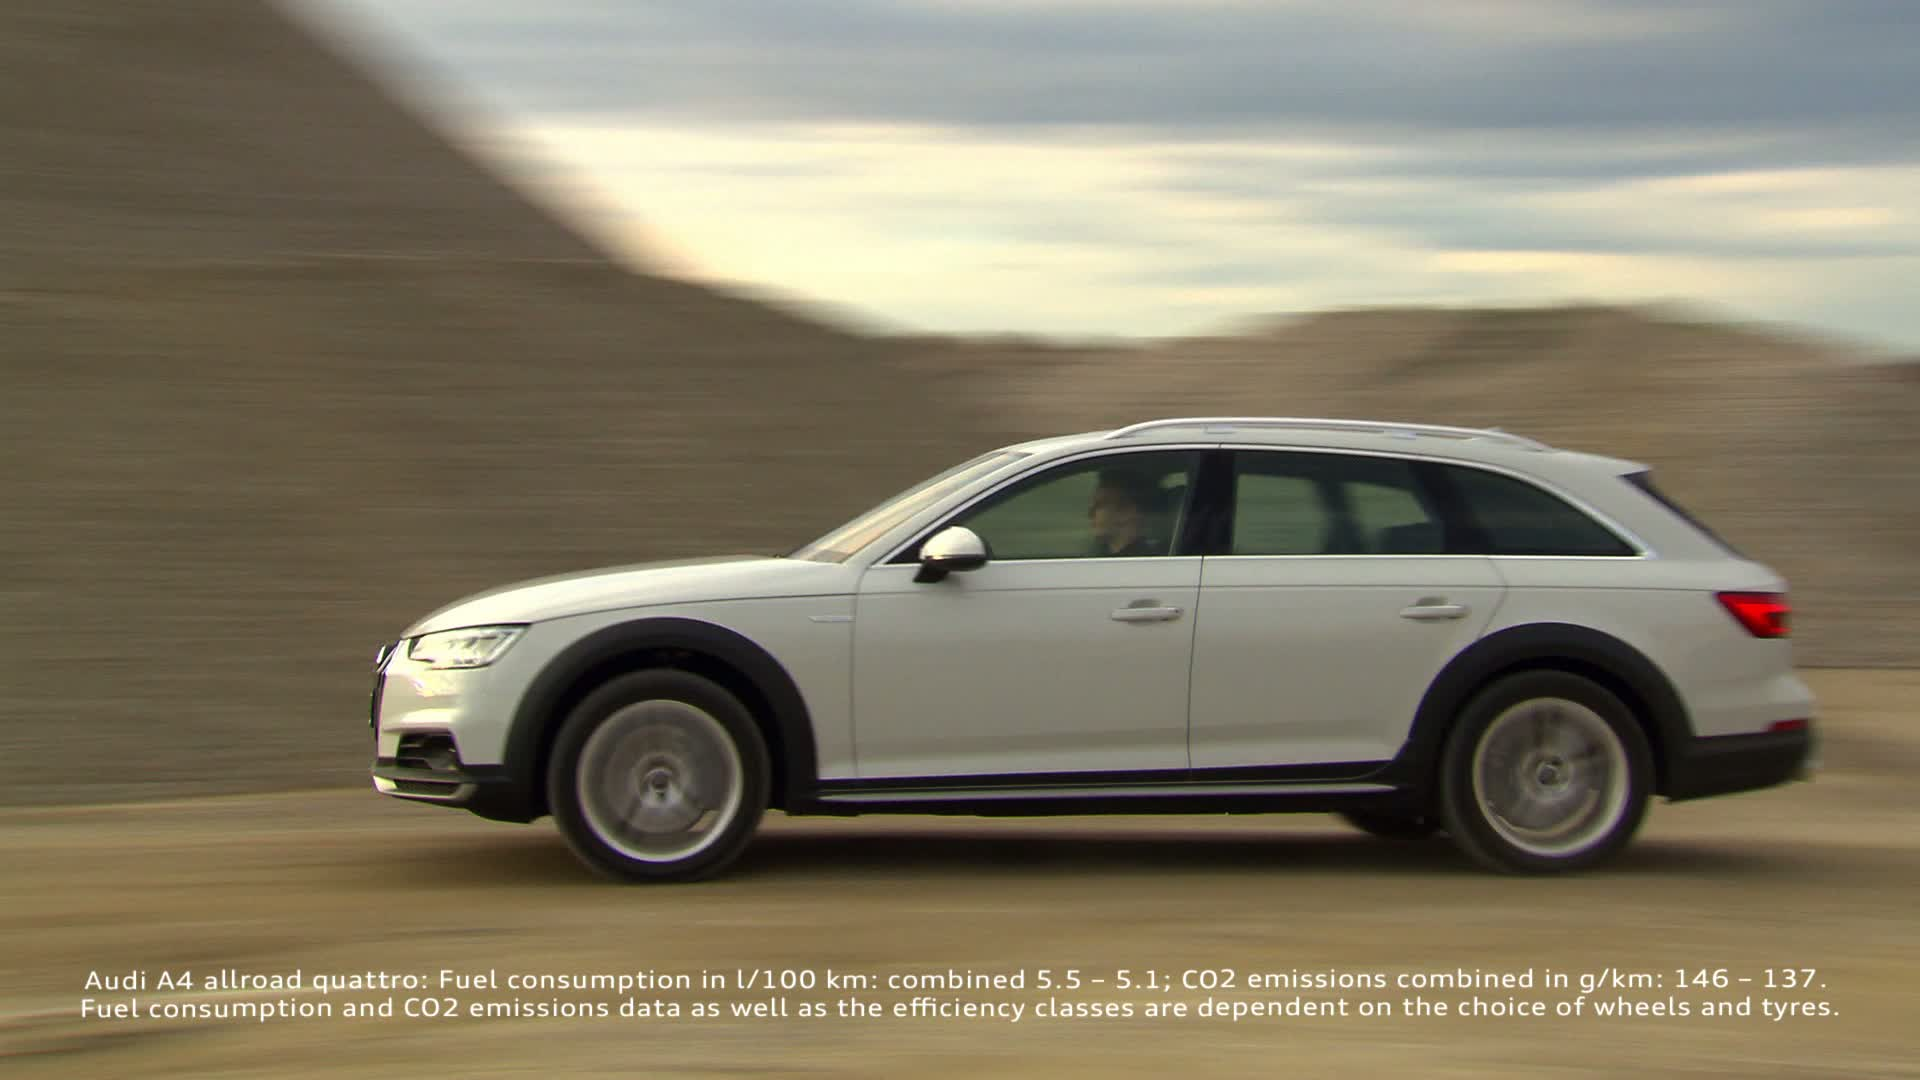 hight resolution of the new audi a4 allroad quattro all round car with off road capabilities video audi mediatv